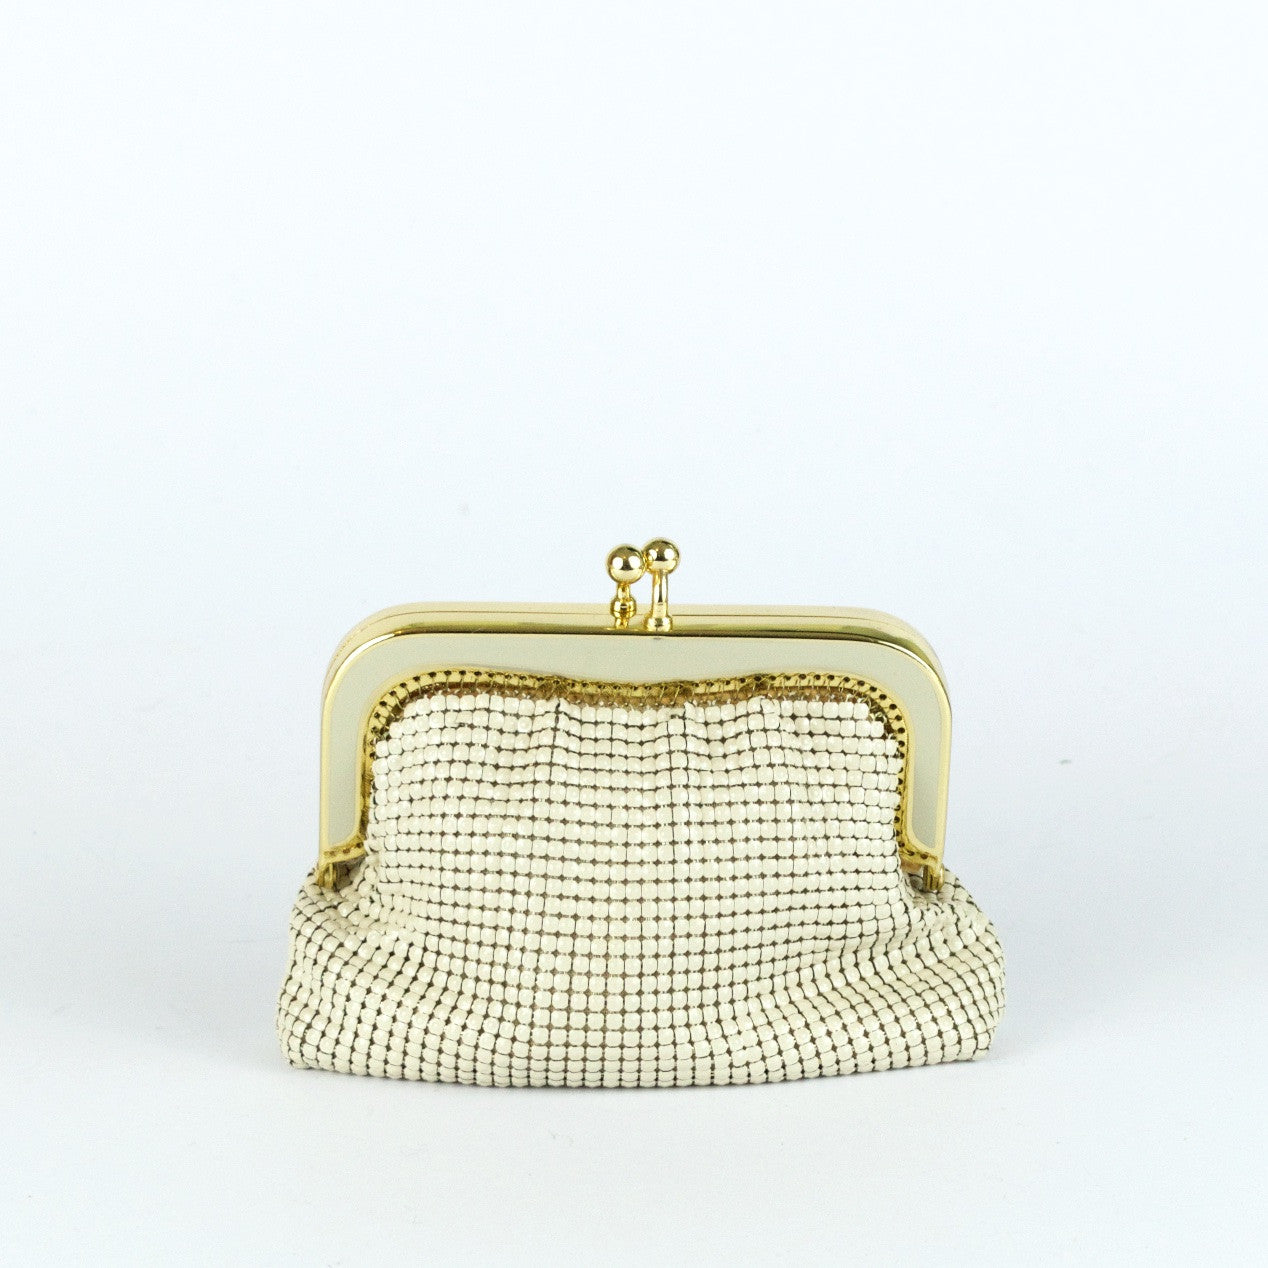 Vintage off-white metal mesh coin purse by Glomesh, view purse front